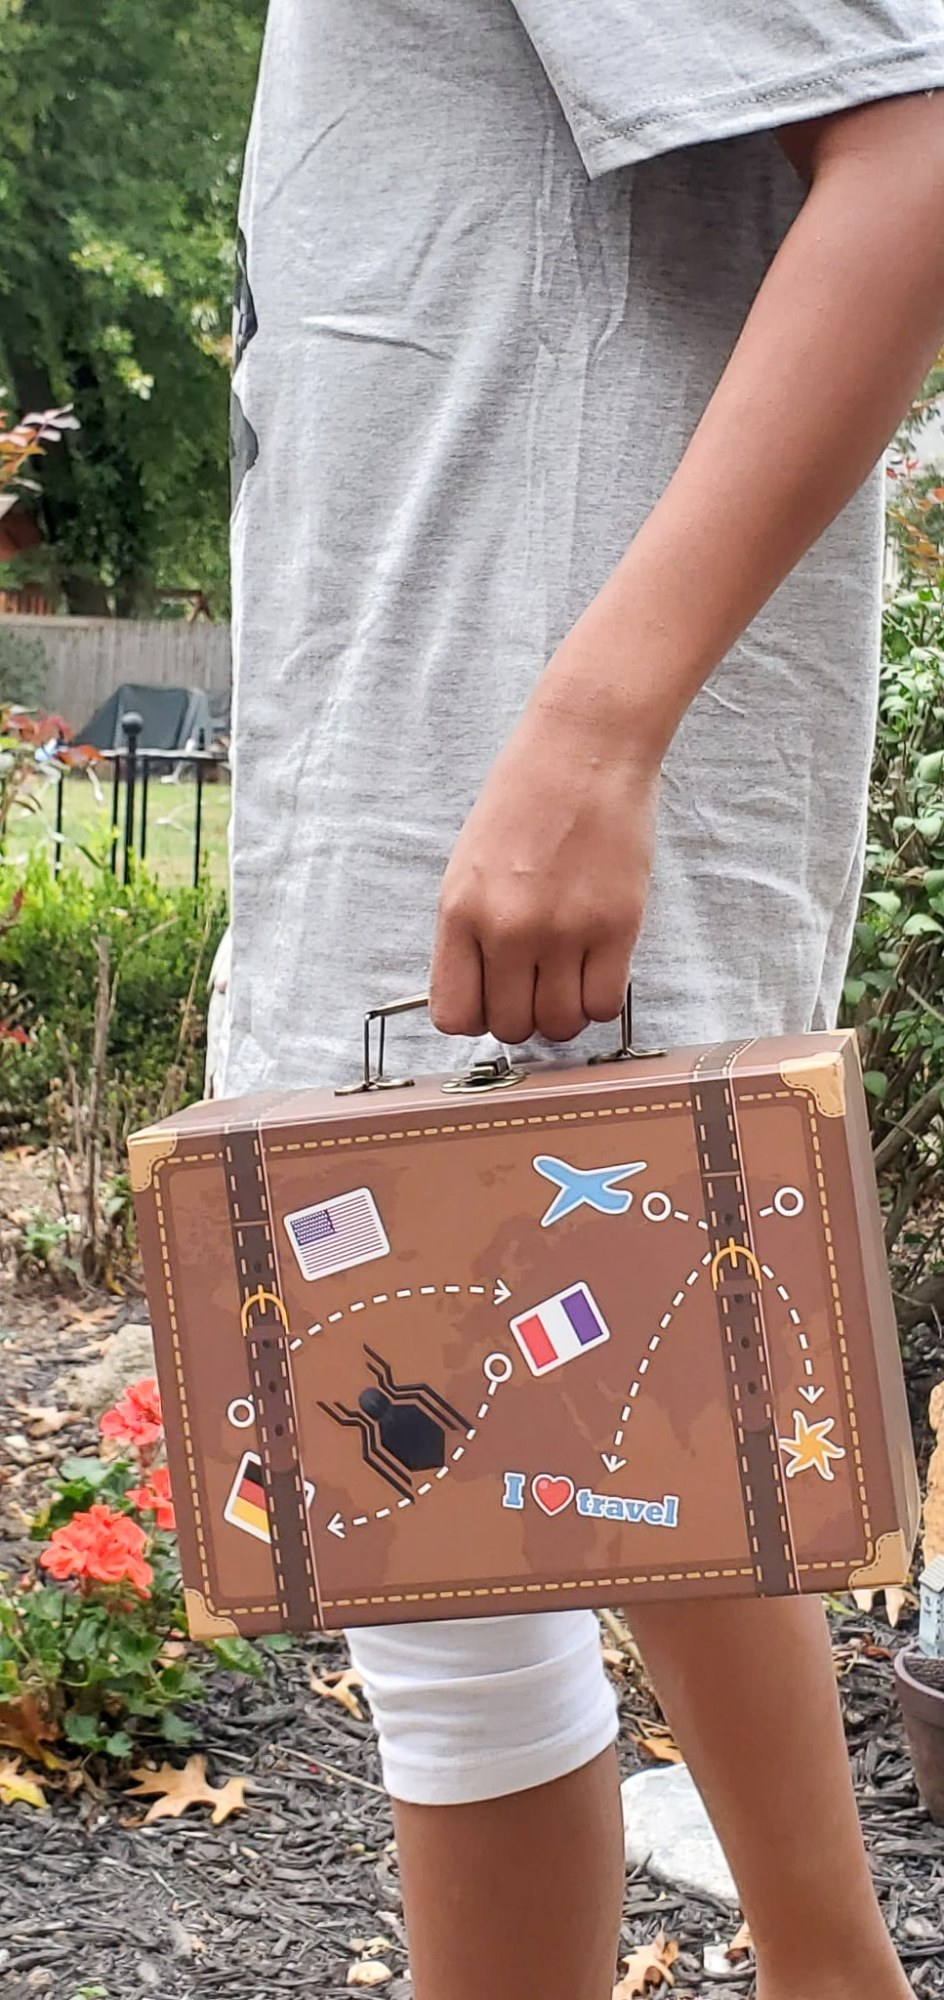 Spider-Man: Far From Home Suitcase. Tom Holland returns as everyone's favorite web-slinger in SPIDER-MAN: FAR FROM HOME, the next chapter after Spider-Man: Homecoming.